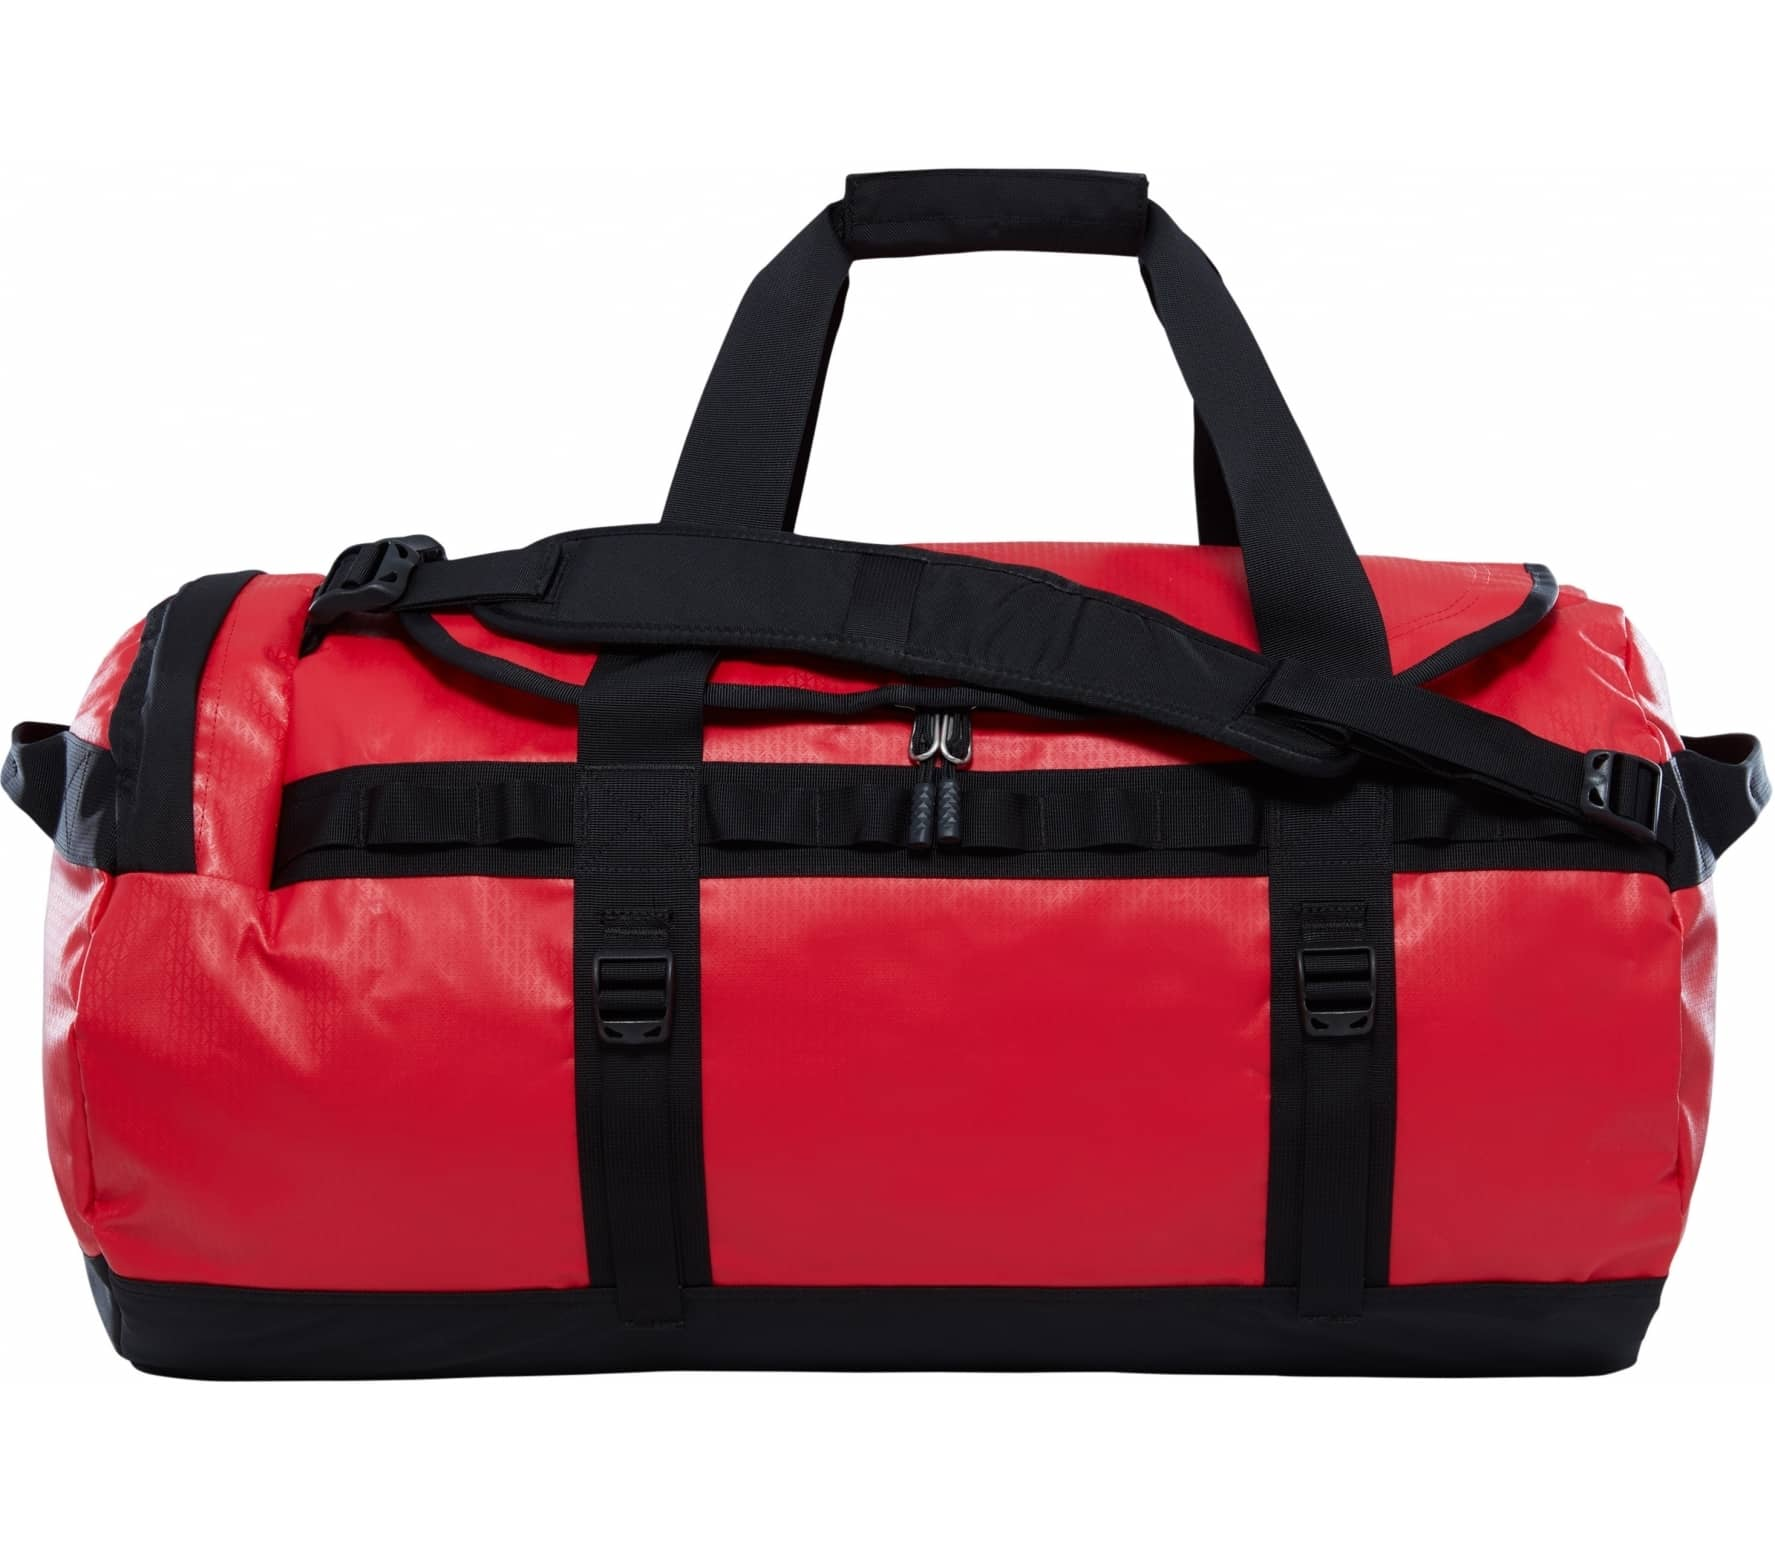 The North Face - Base Camp M - Update duffel bag (black/red) thumbnail